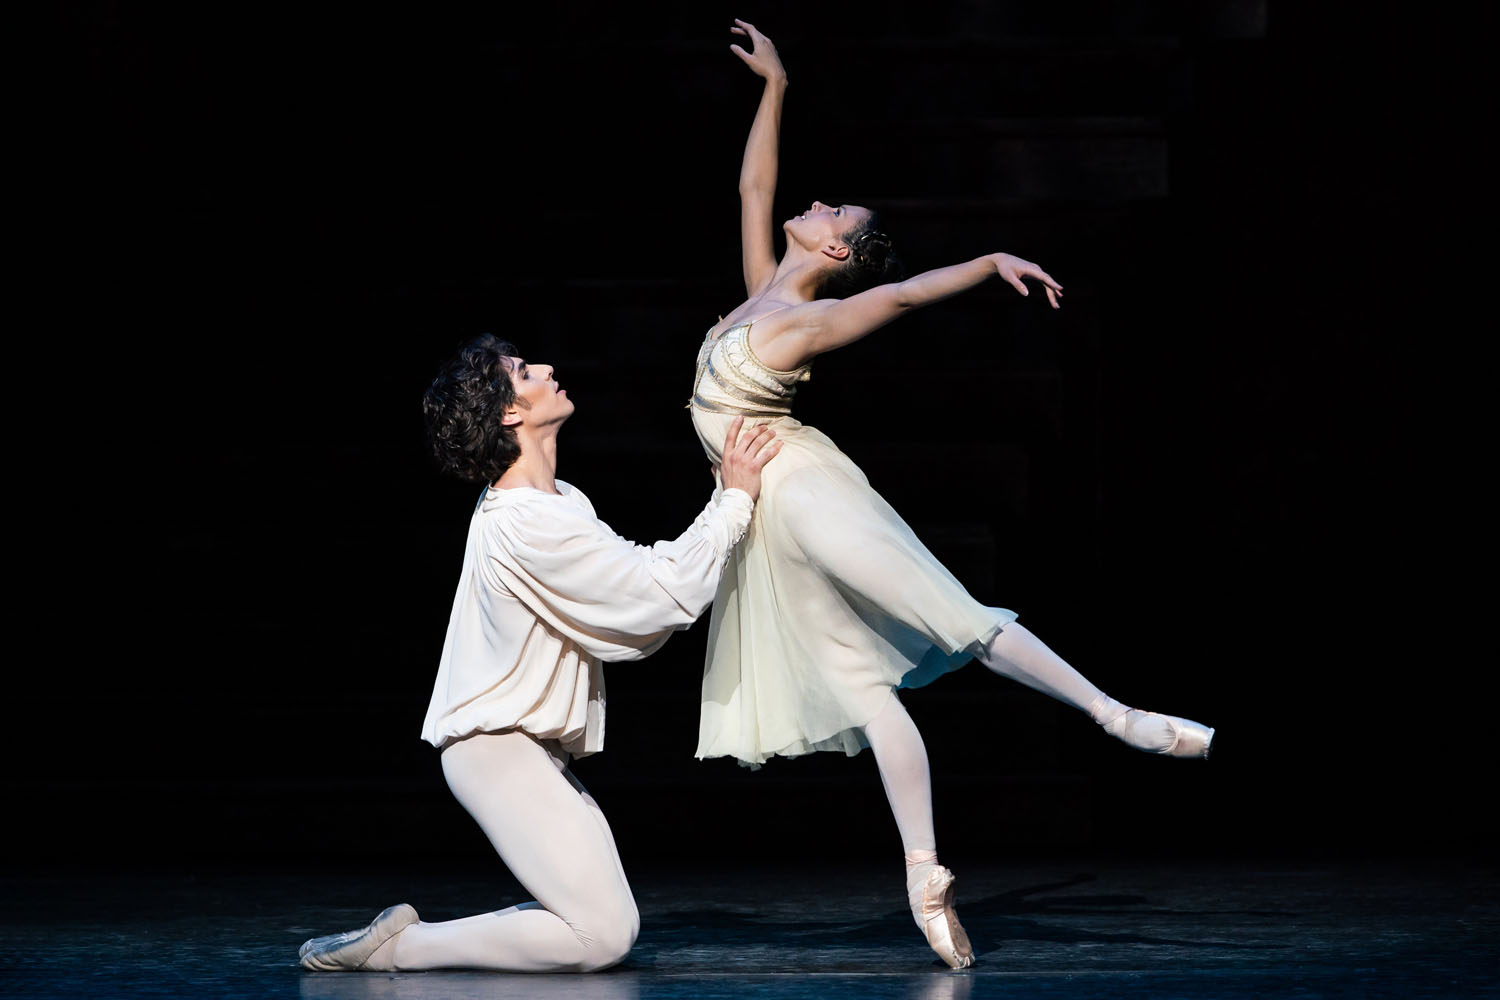 Cesar Corrales as Romeo and Francesca Hayward as Juliet in Romeo and Juliet, The Royal Ballet ©2019 ROH. Photograph by Helen Maybanks- s